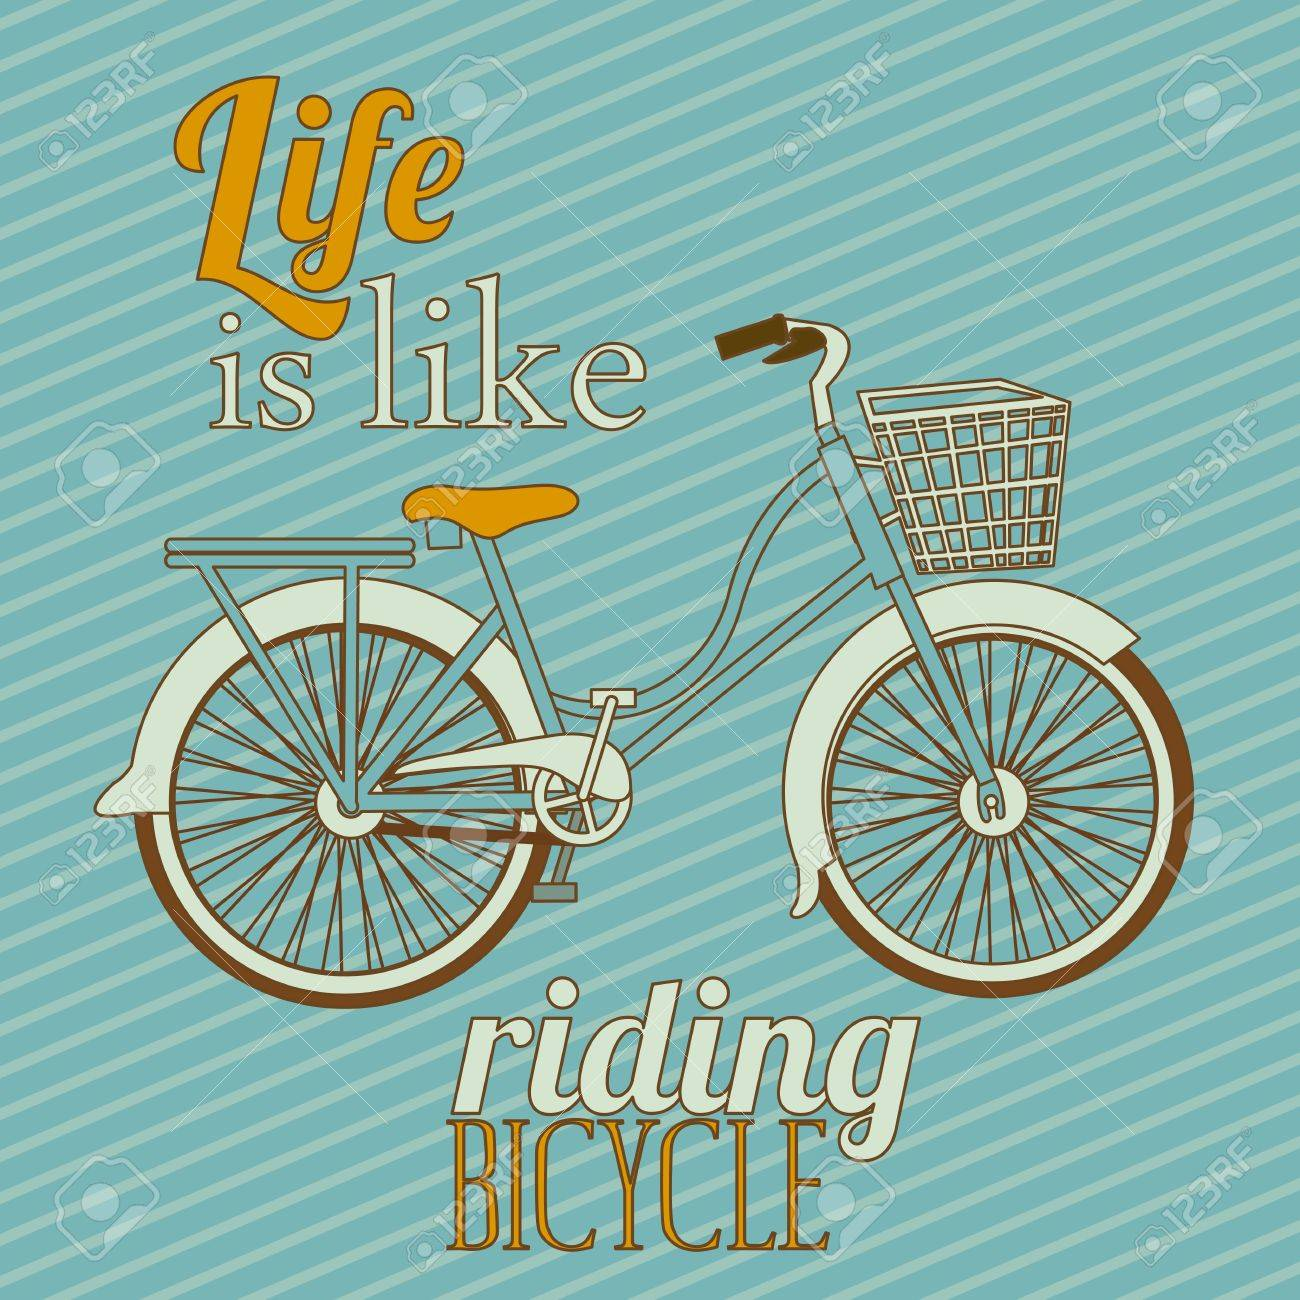 Illustration of Bicycle, Riding on the bicycle, vector illustration Stock Vector - 19461816